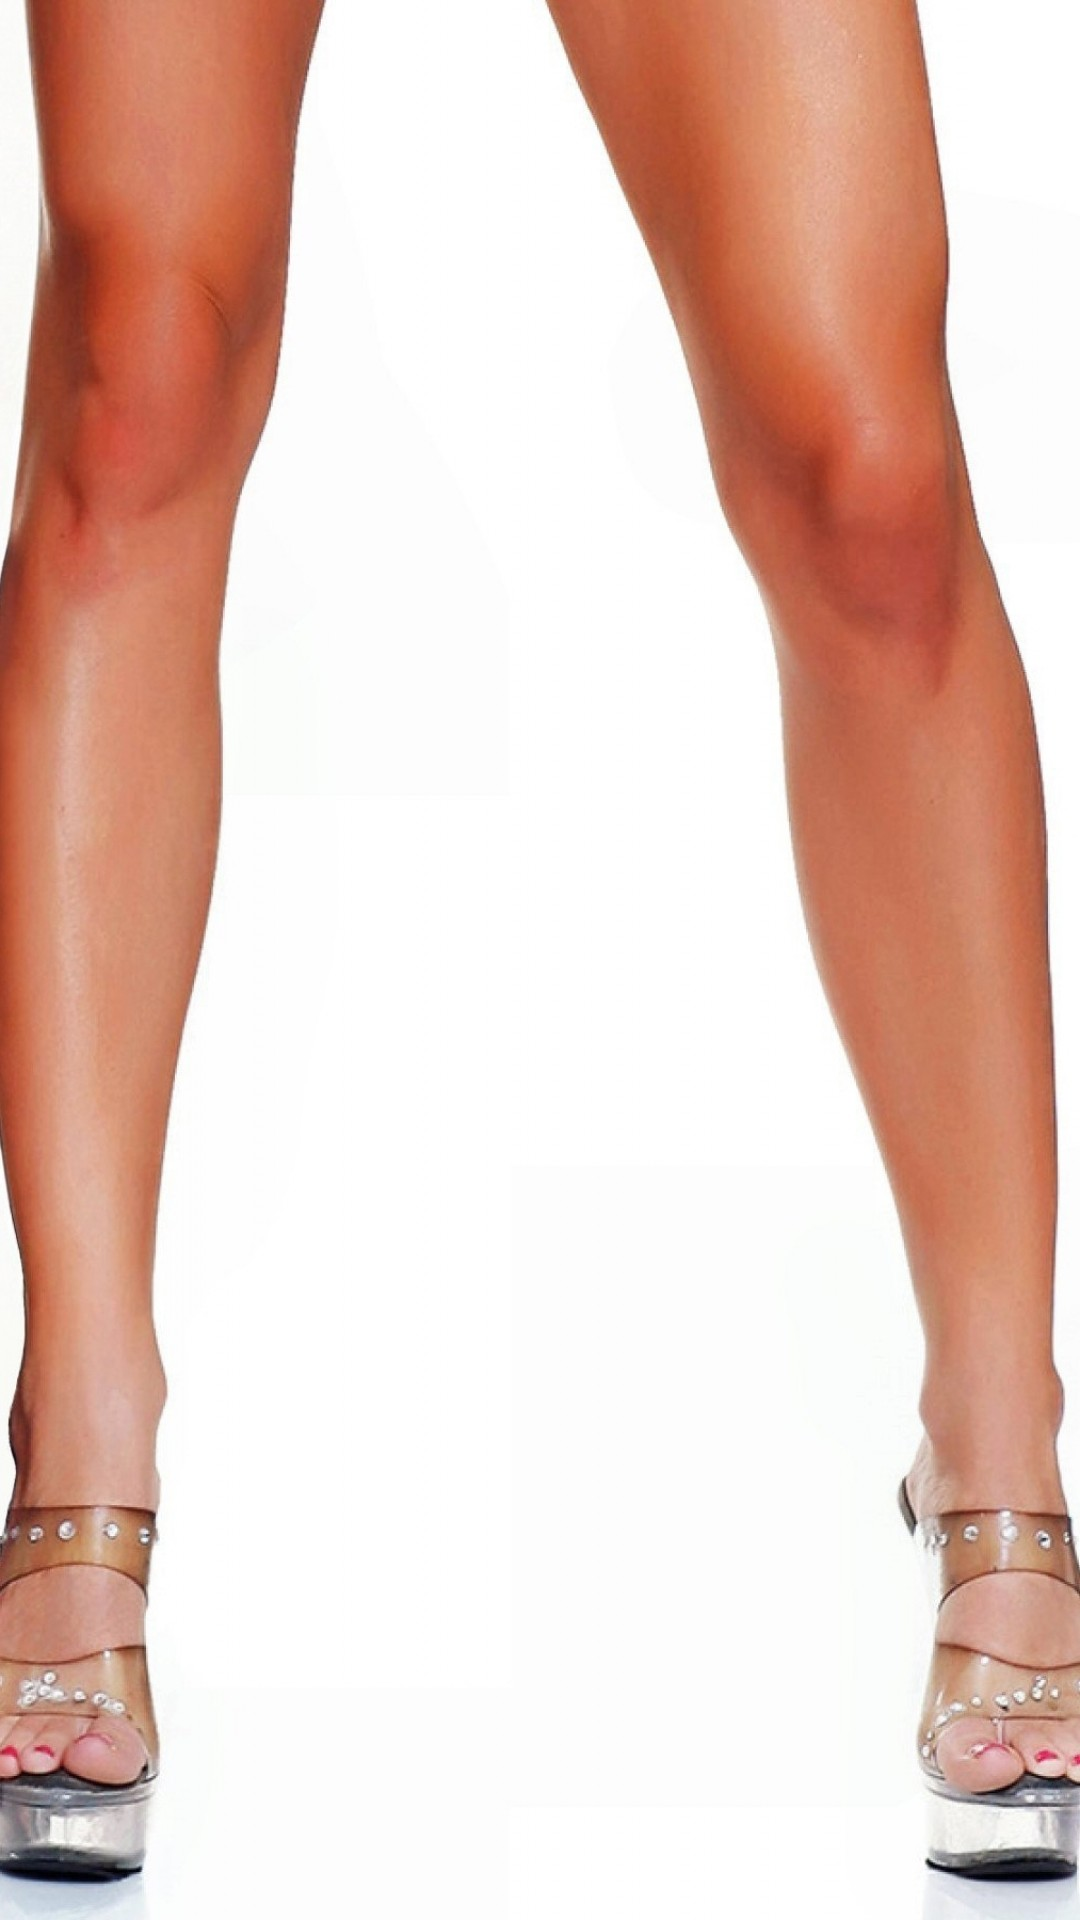 how to get beautiful legs at home